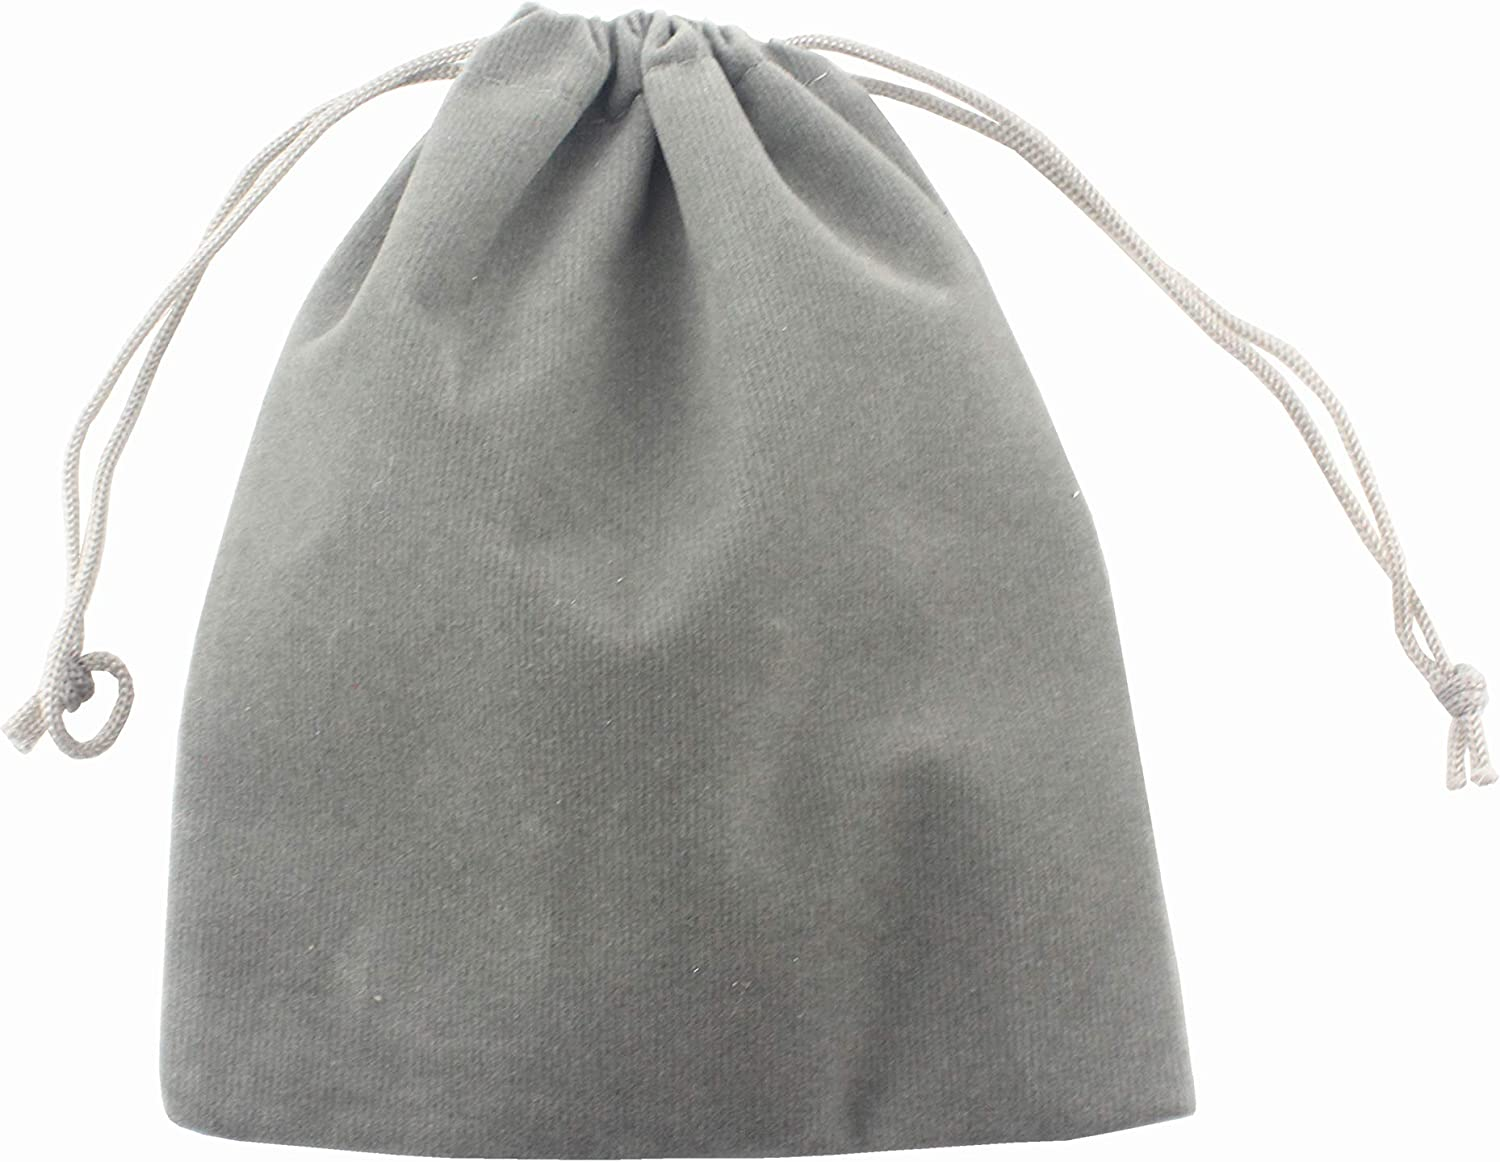 AEAOA Pack of 25 Small Velvet Gift Bags Drawstring Jewelry Pouches Candy Bags Wedding Favors 3 X 2, Black